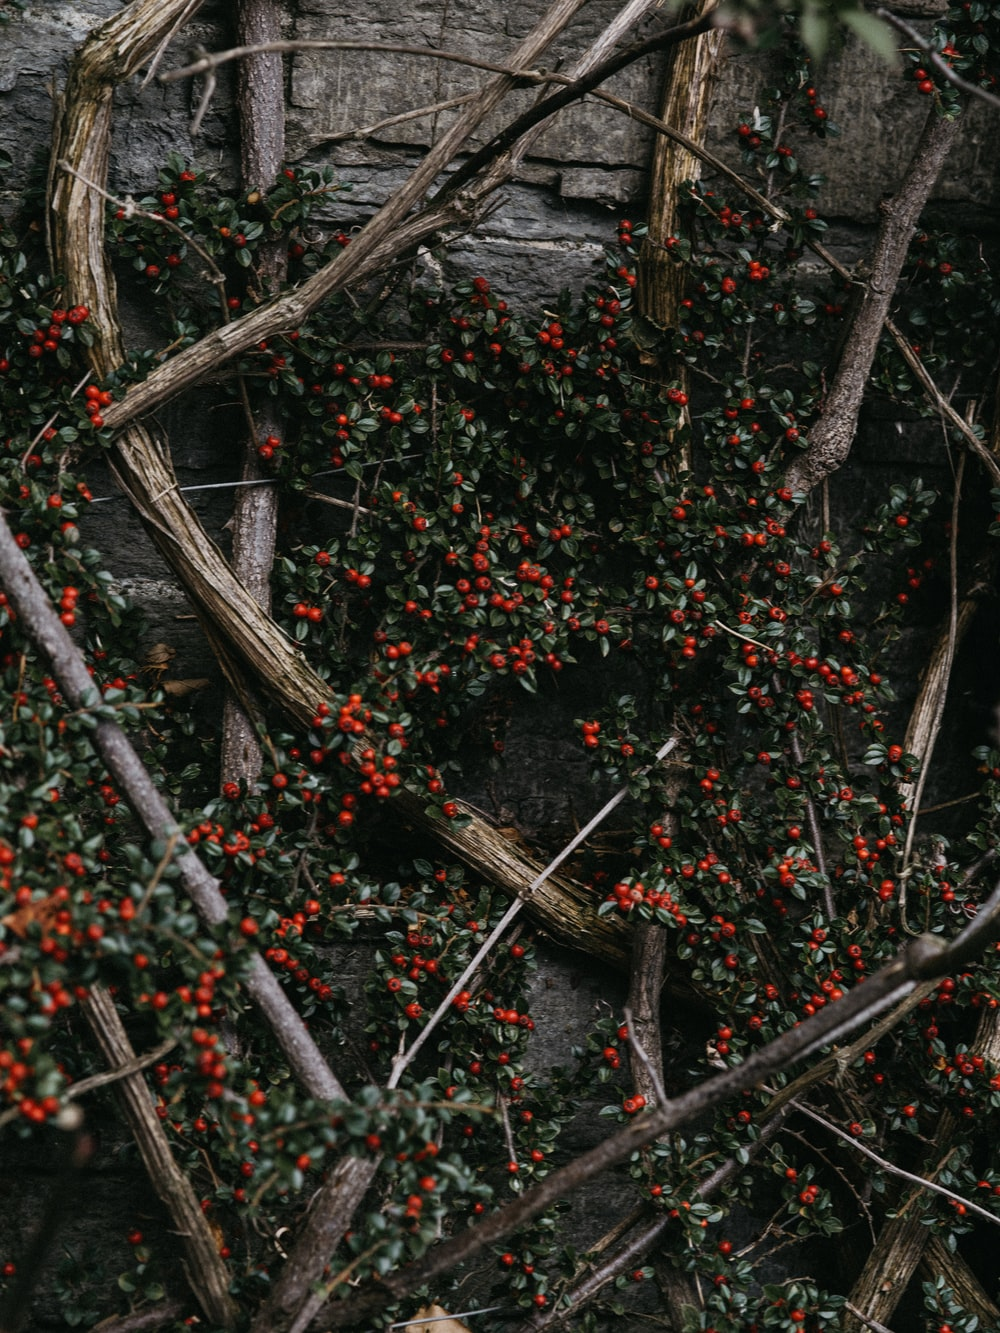 green-leafed plant with red cherries